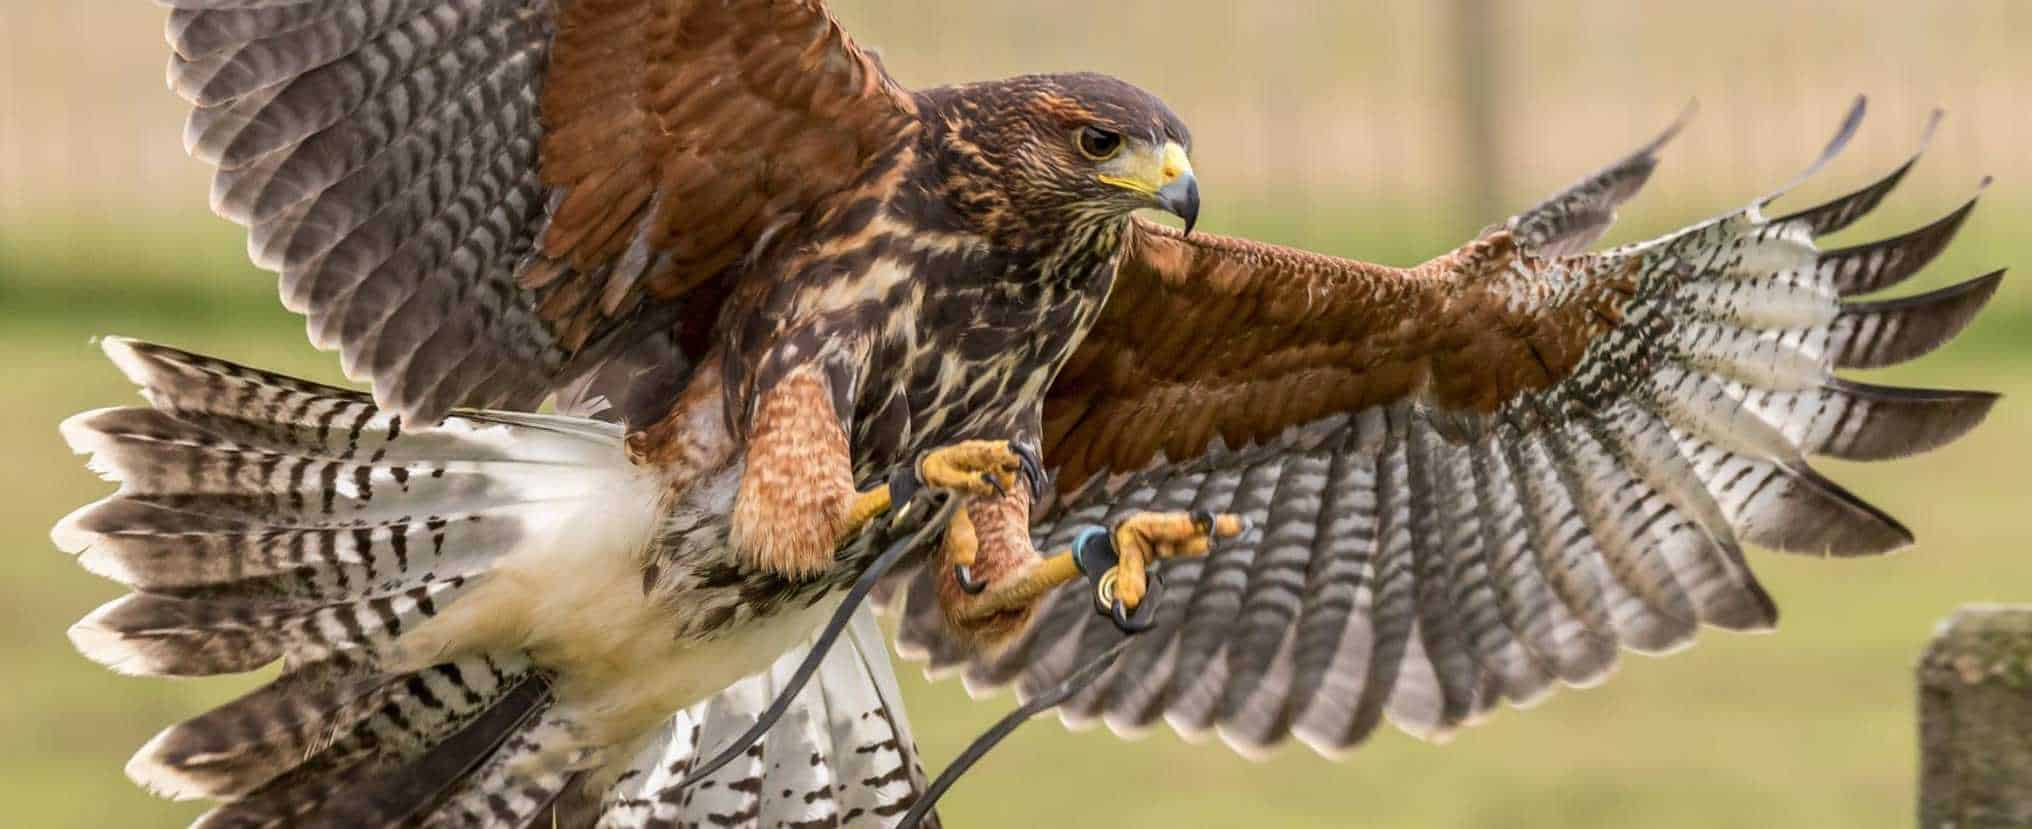 Harris Hawk at the National Centre for Birds of Prey, Duncombe Park, Helmsley UK